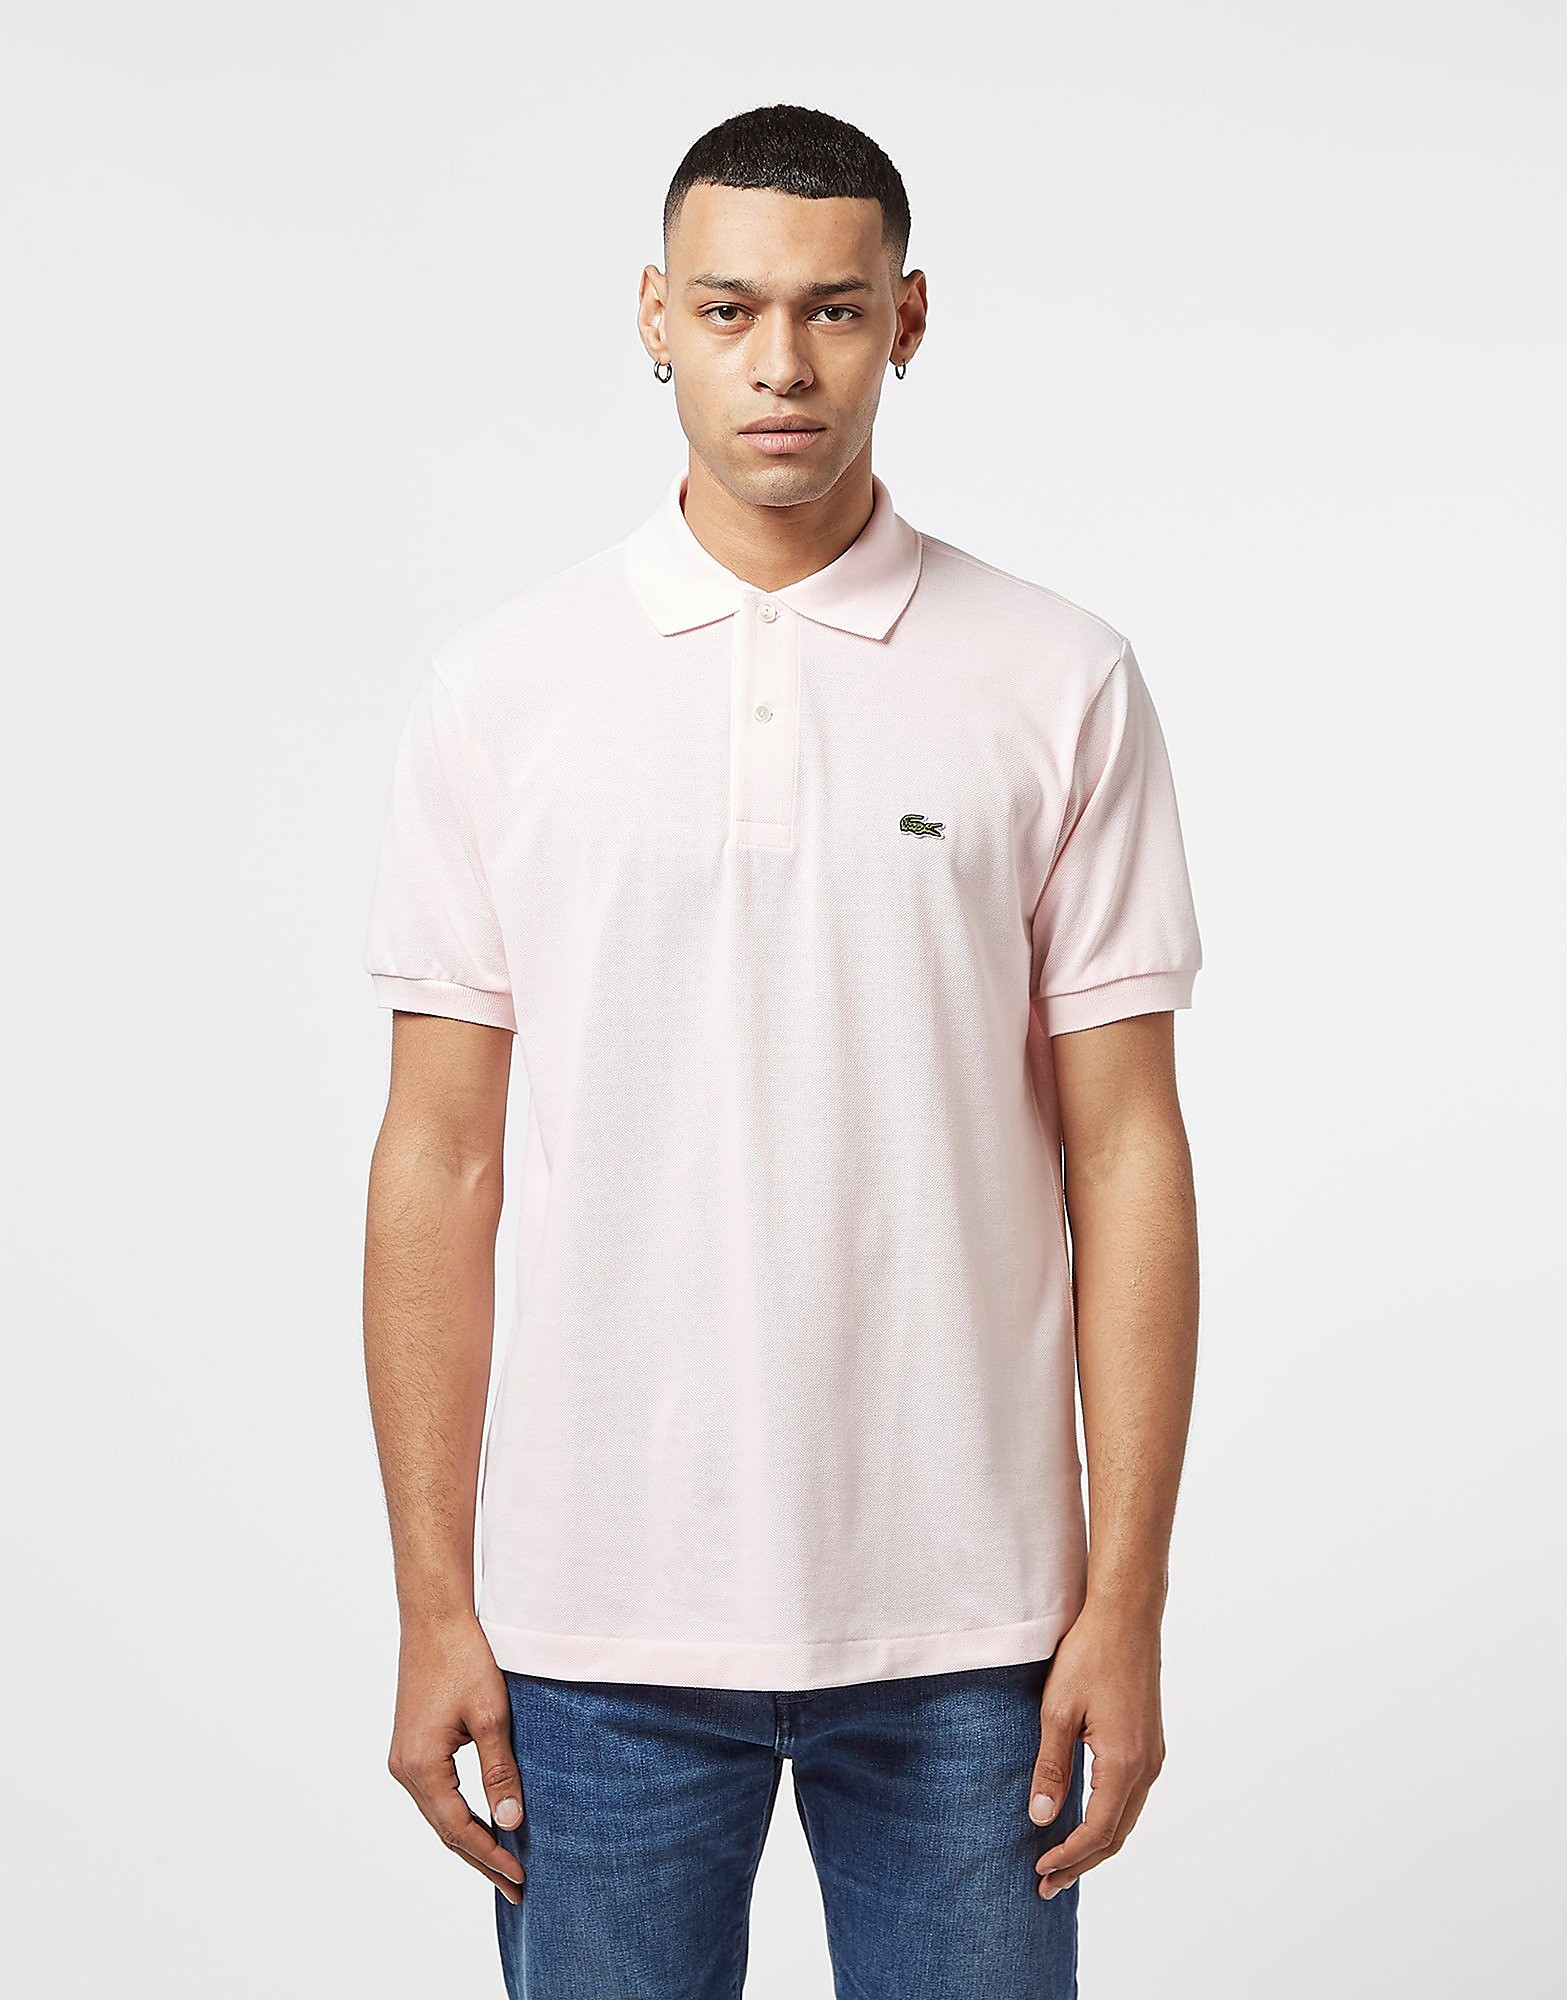 Lacoste L1212 Short Sleeve Polo Shirt